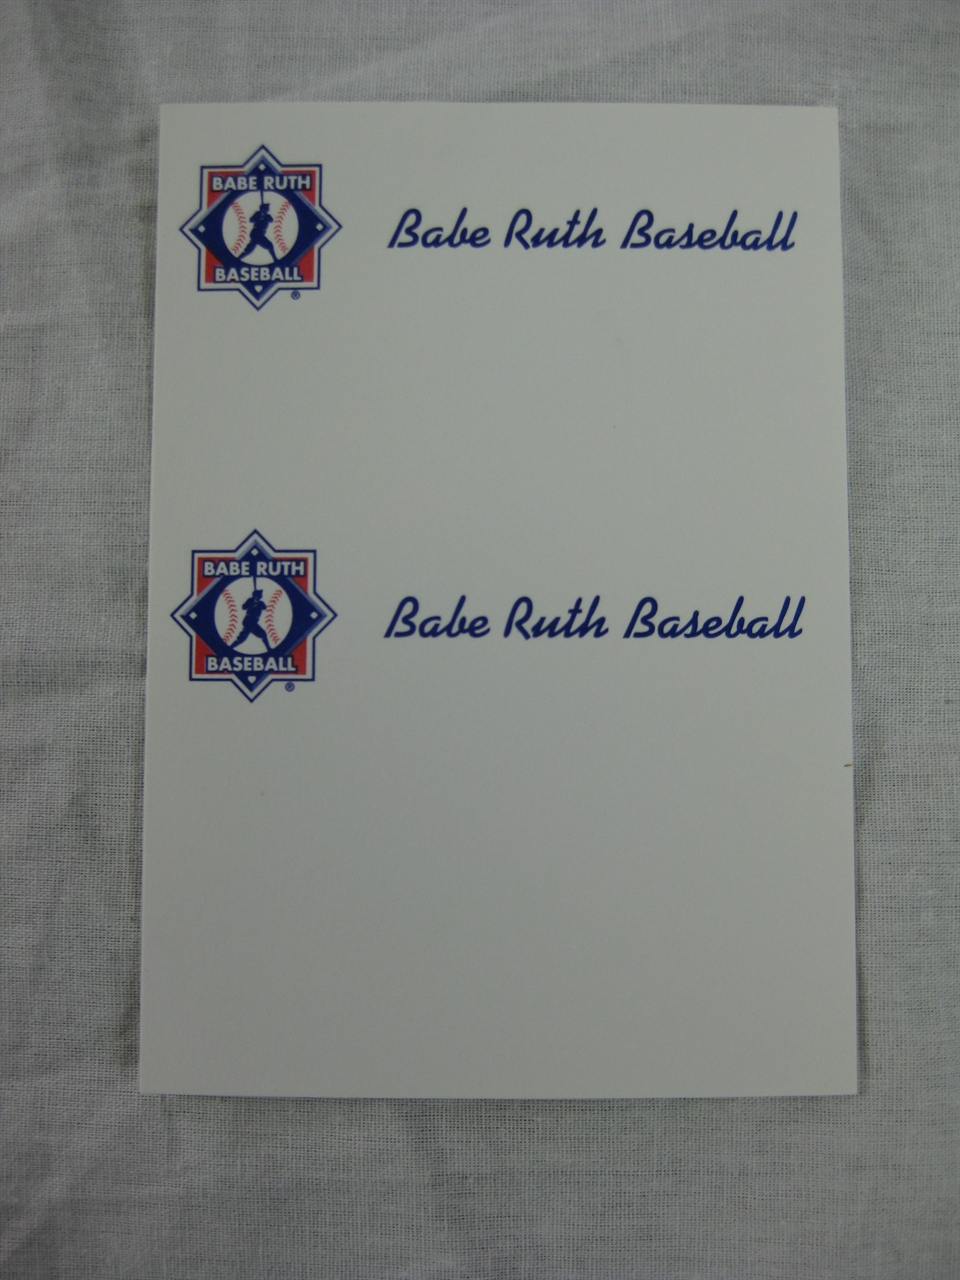 Babe Ruth League Online Store. Babe Ruth Baseball Business Cards